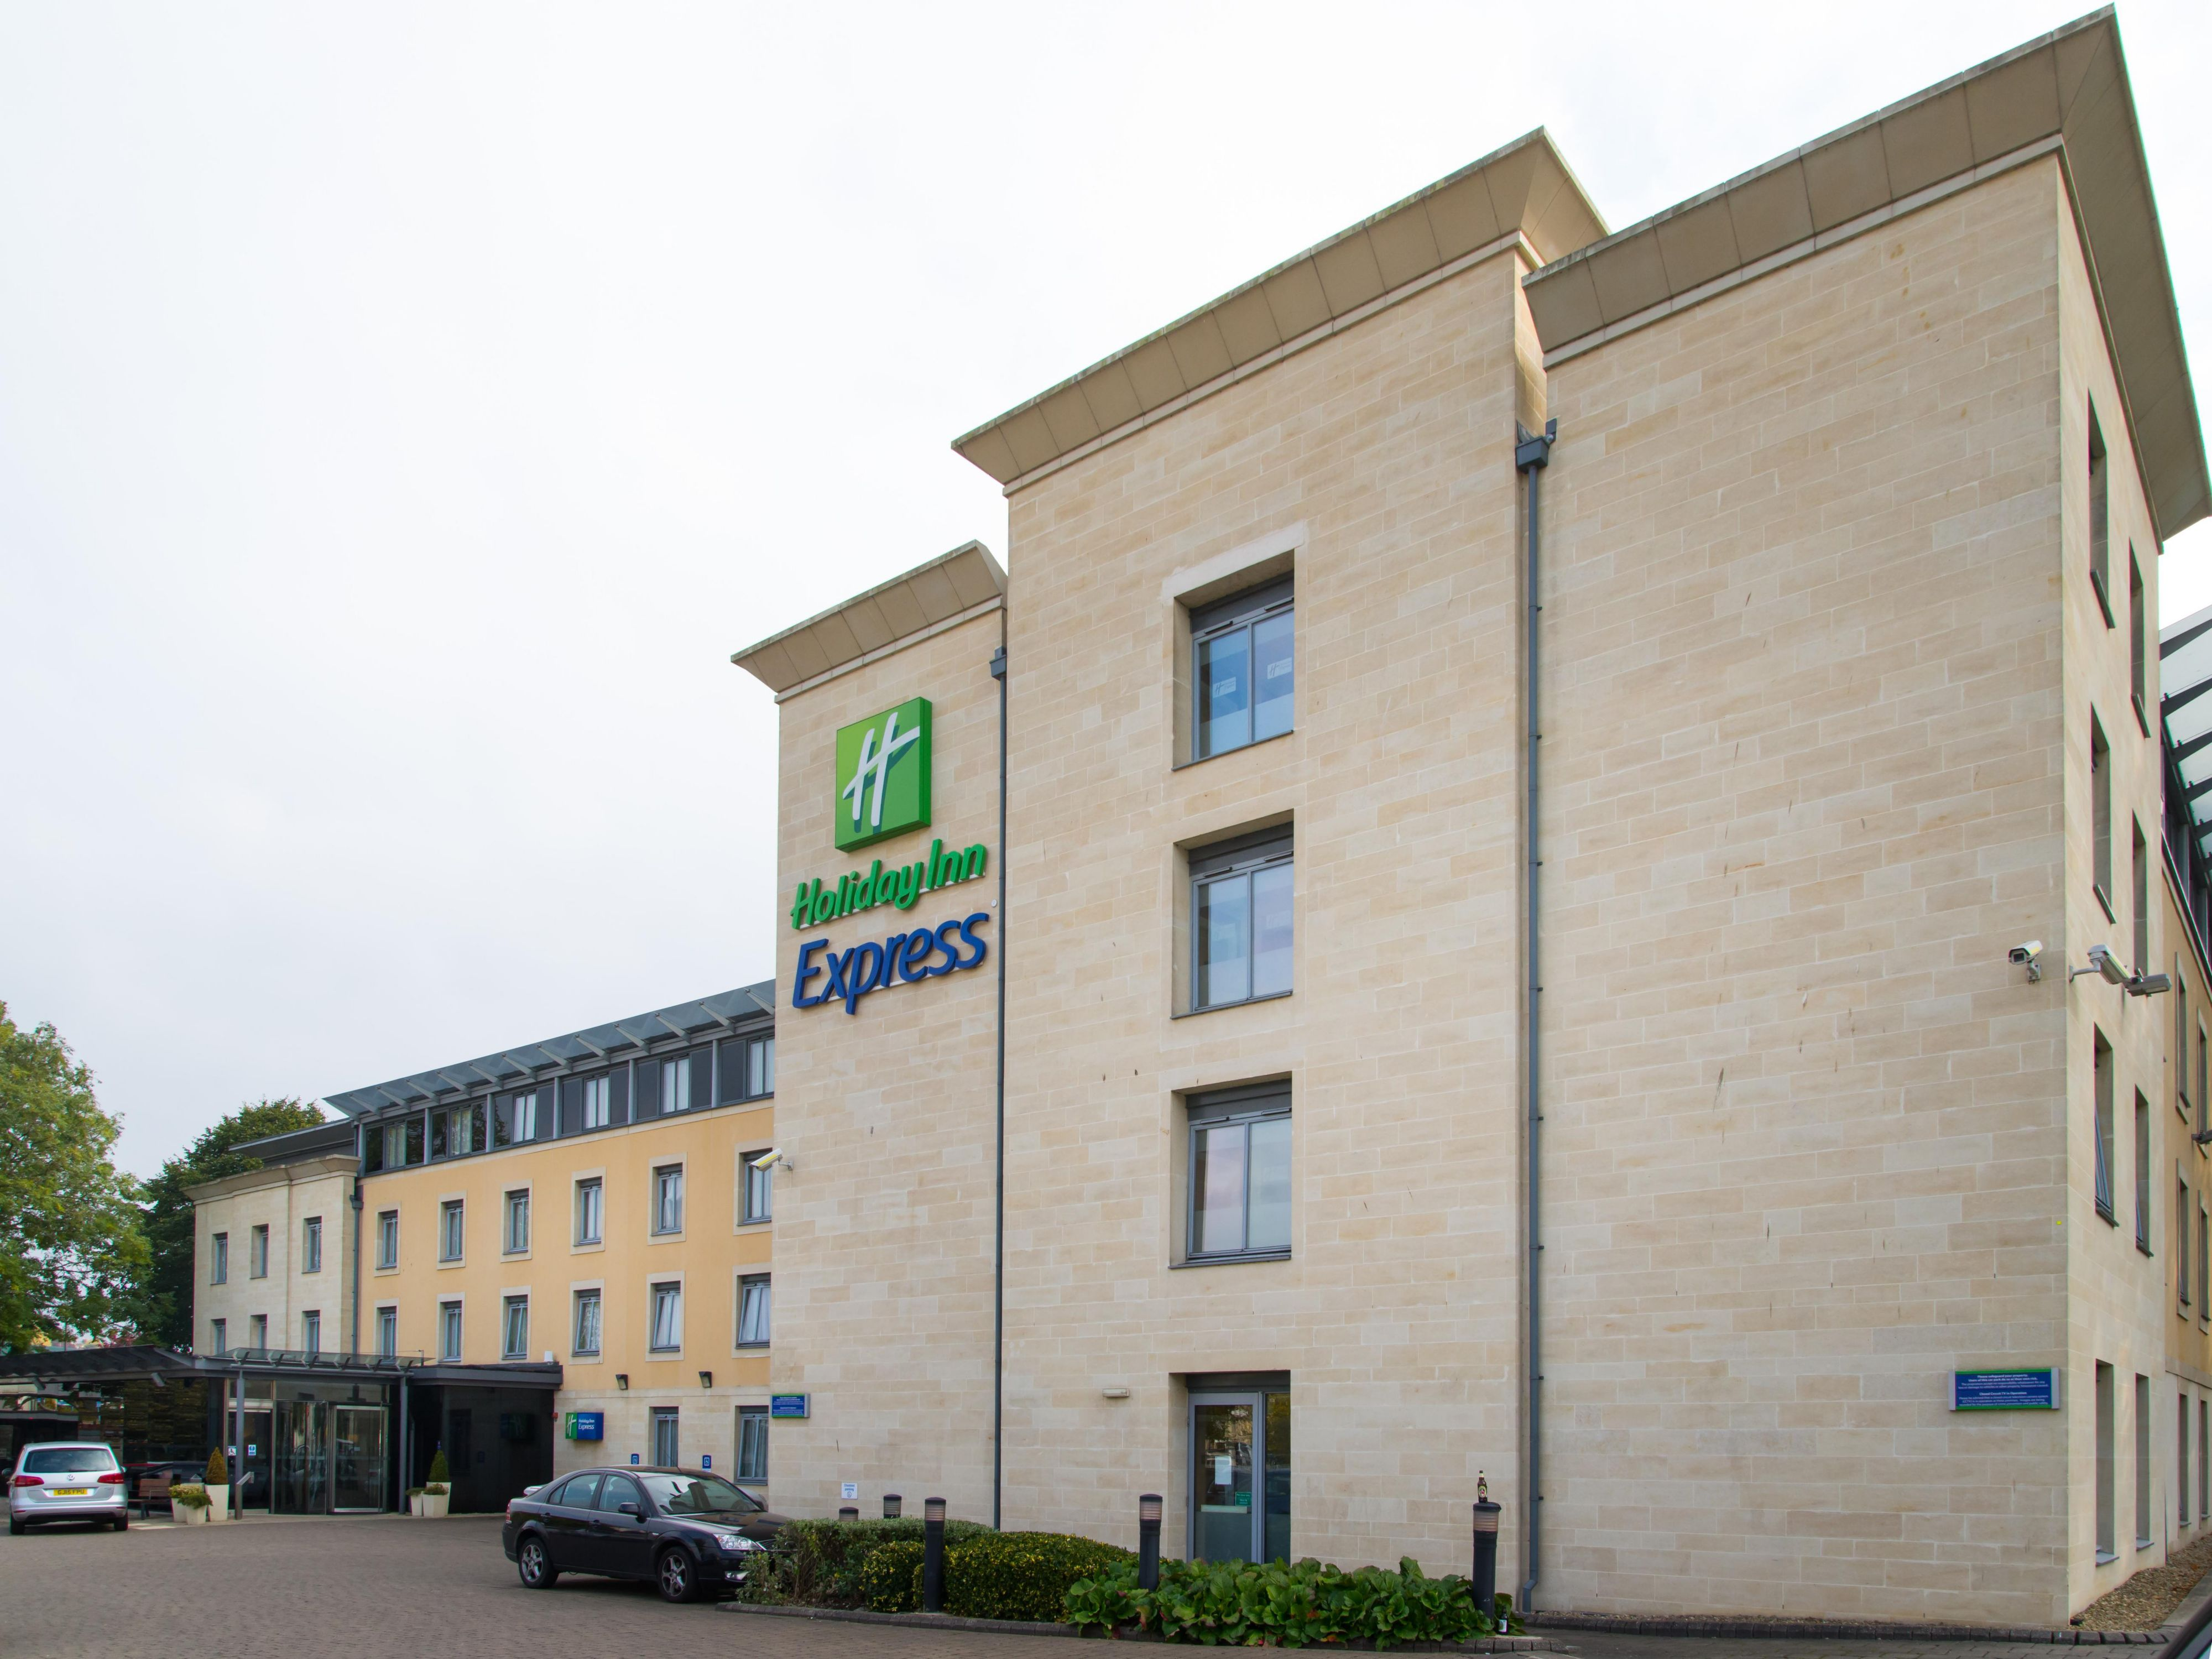 Our hotel in Bath has 126 bedrooms and ample on-site car parking